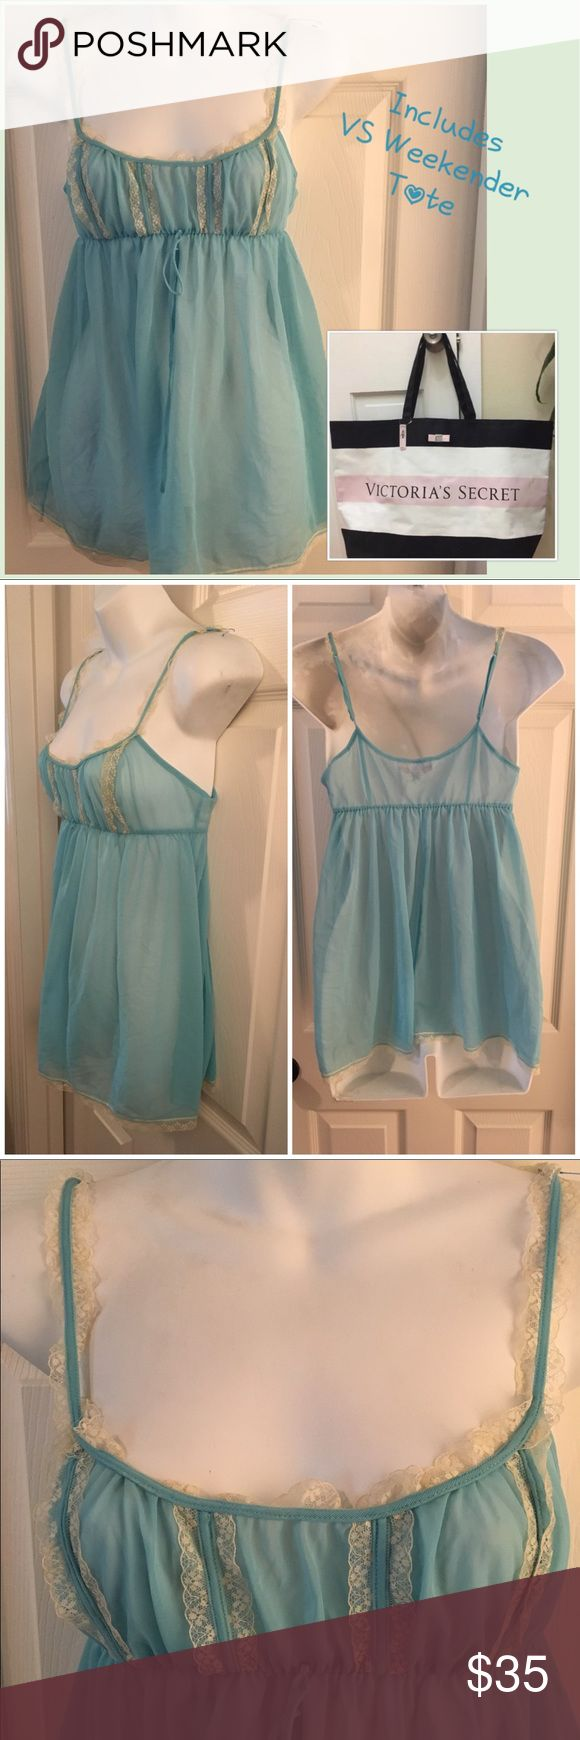 "Vintage Style Baby Blue VS Babydoll & VS Tote Bag Vintage Style Baby Blue Victoria's Secret Chemise Nightie. Size XS. Semi sheer soft polyester trimmed in white lace. Excellent condition with no flaws to note. Adjustable straps. Includes a HUGE NWT VS Weekender Bag! Without handles it measures 25 x 15.5 x 7"". It is heavy duty canvas- plastic coated on the inside, so perfect for the beach or pool. Victoria's Secret Intimates & Sleepwear Chemises & Slips"